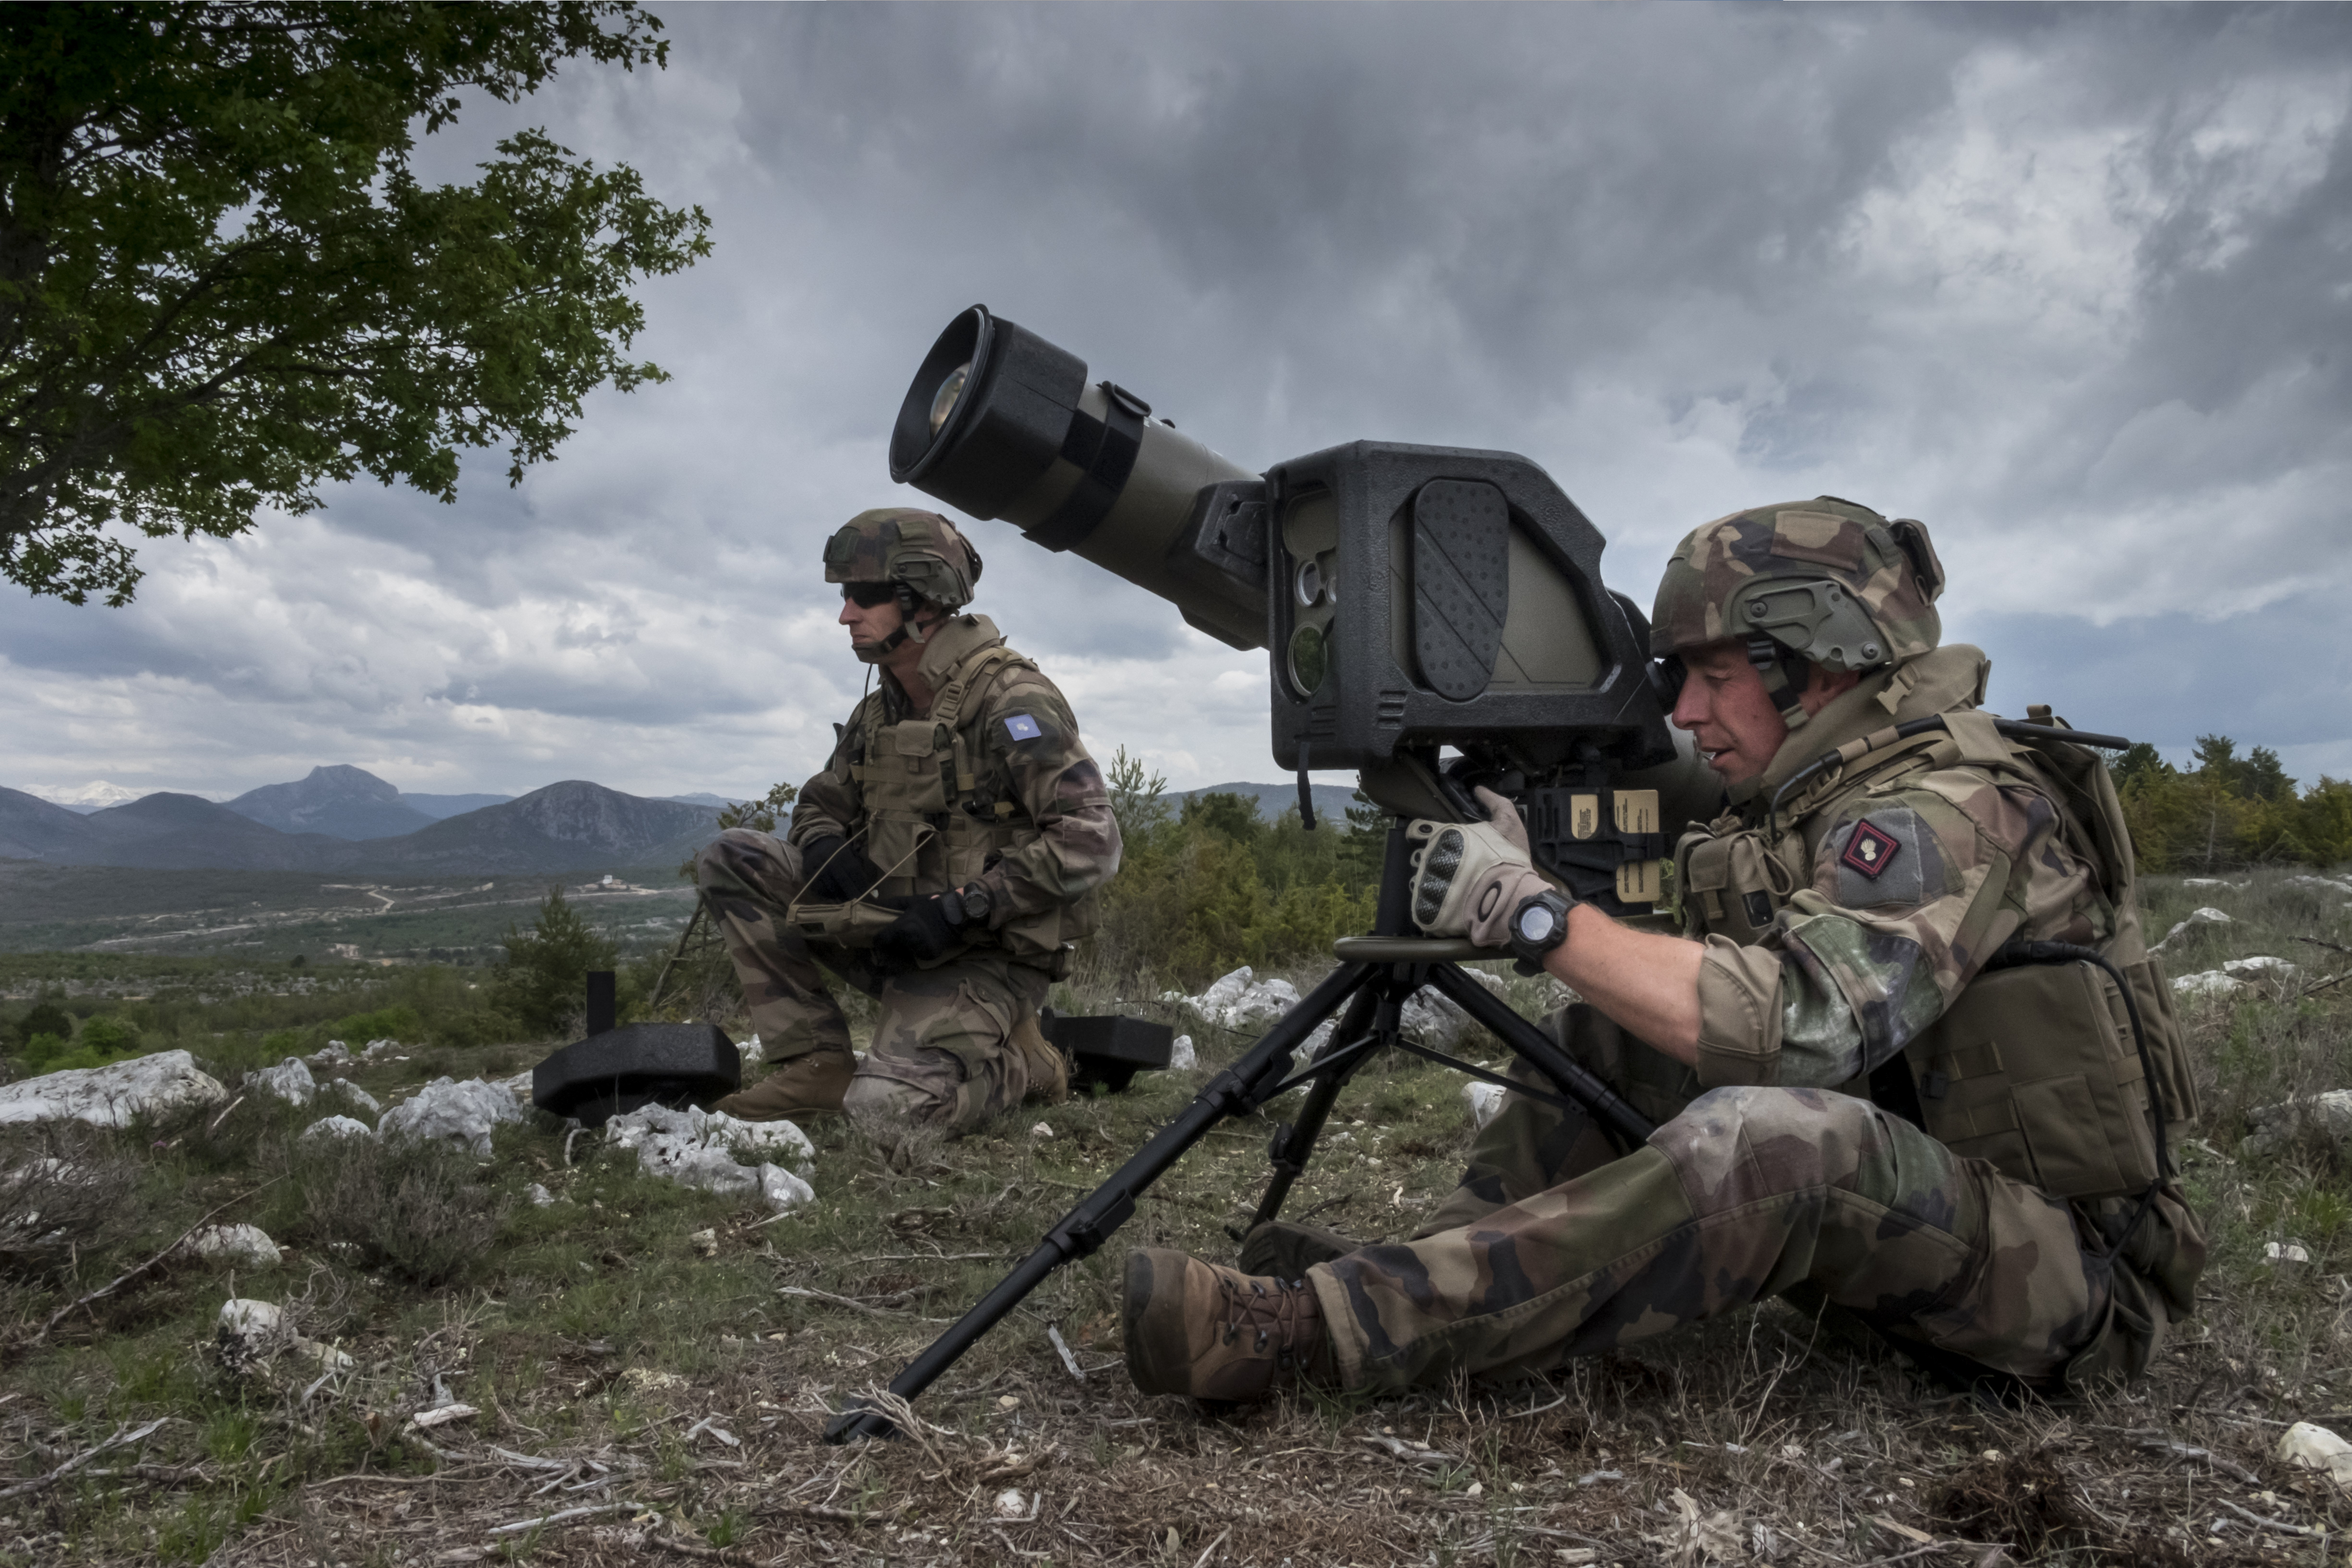 MMP missile endorsed by EU - MBDA